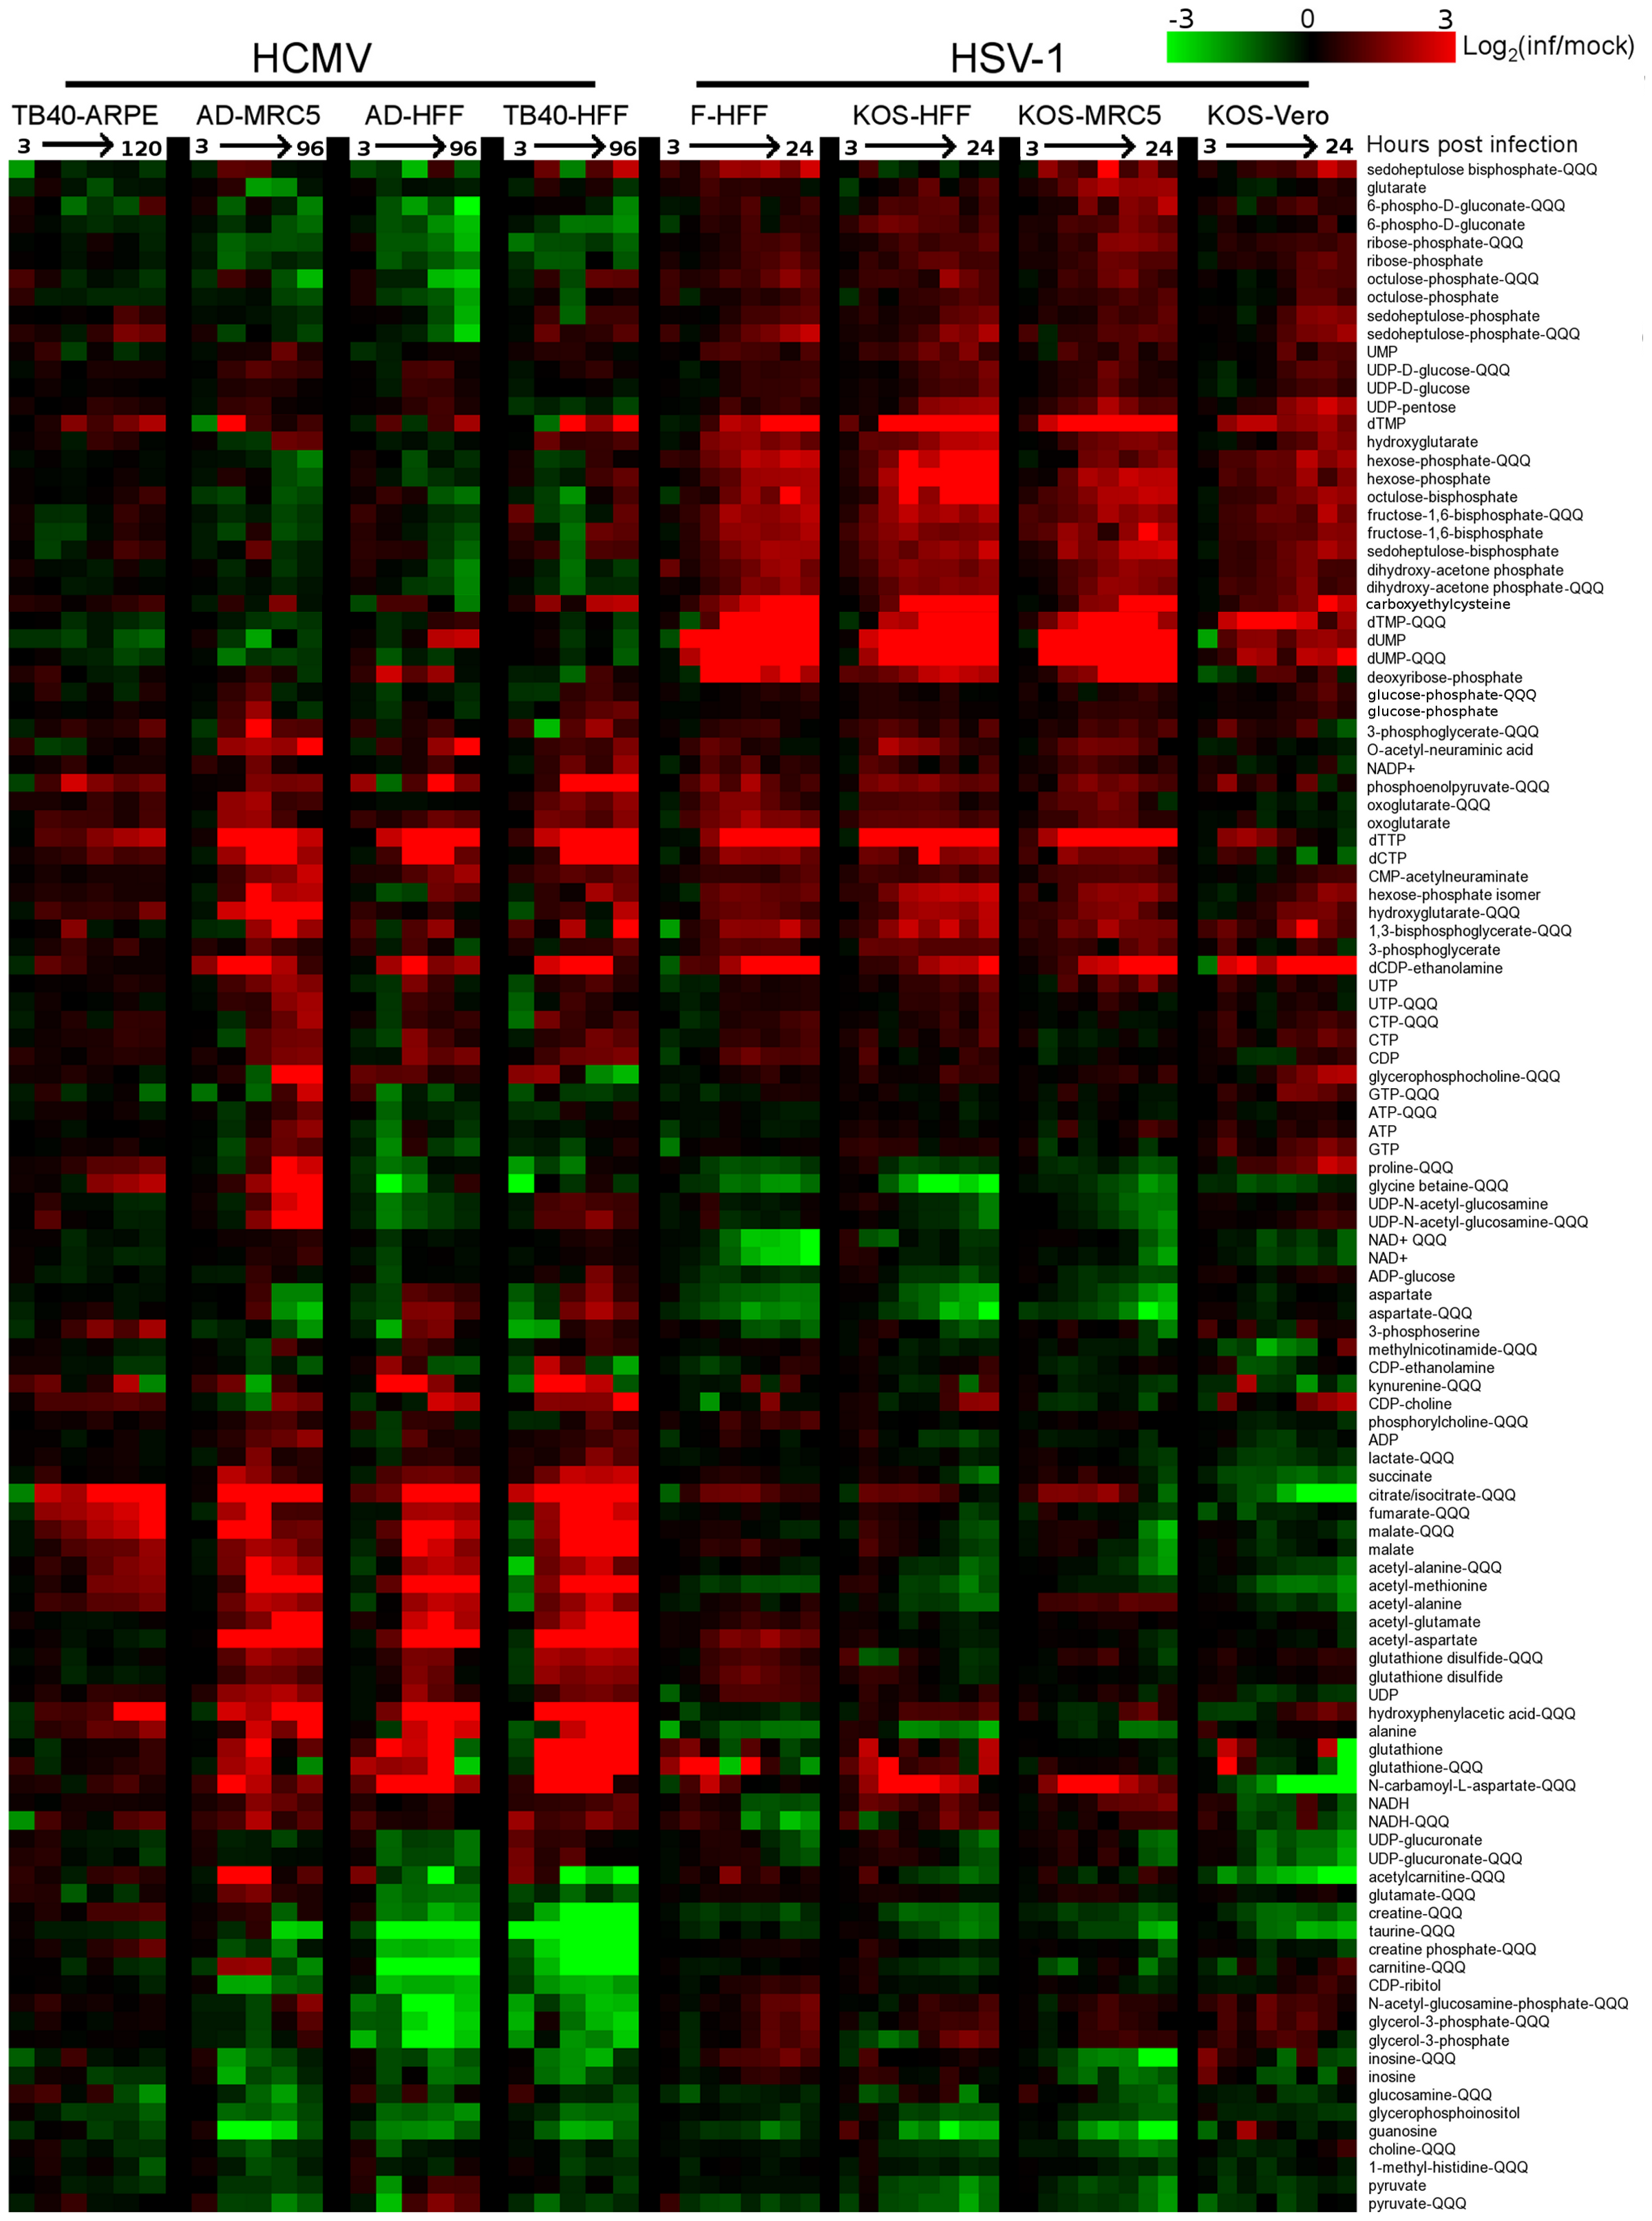 Divergent metabolic profiles of HCMV- and HSV-1-infected cells.